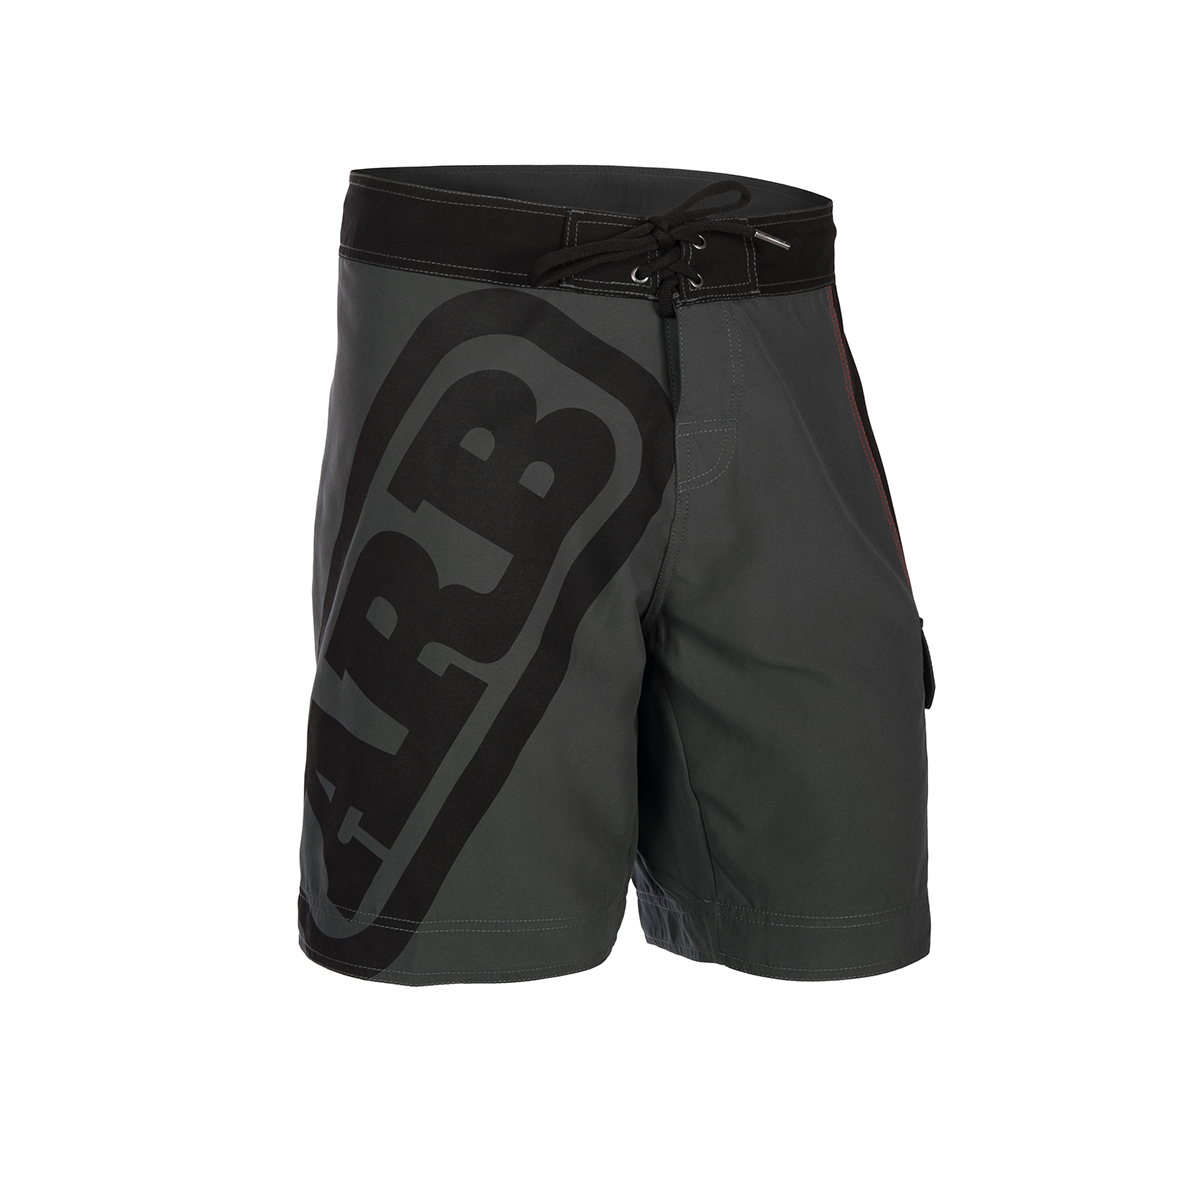 ARB Board Shorts